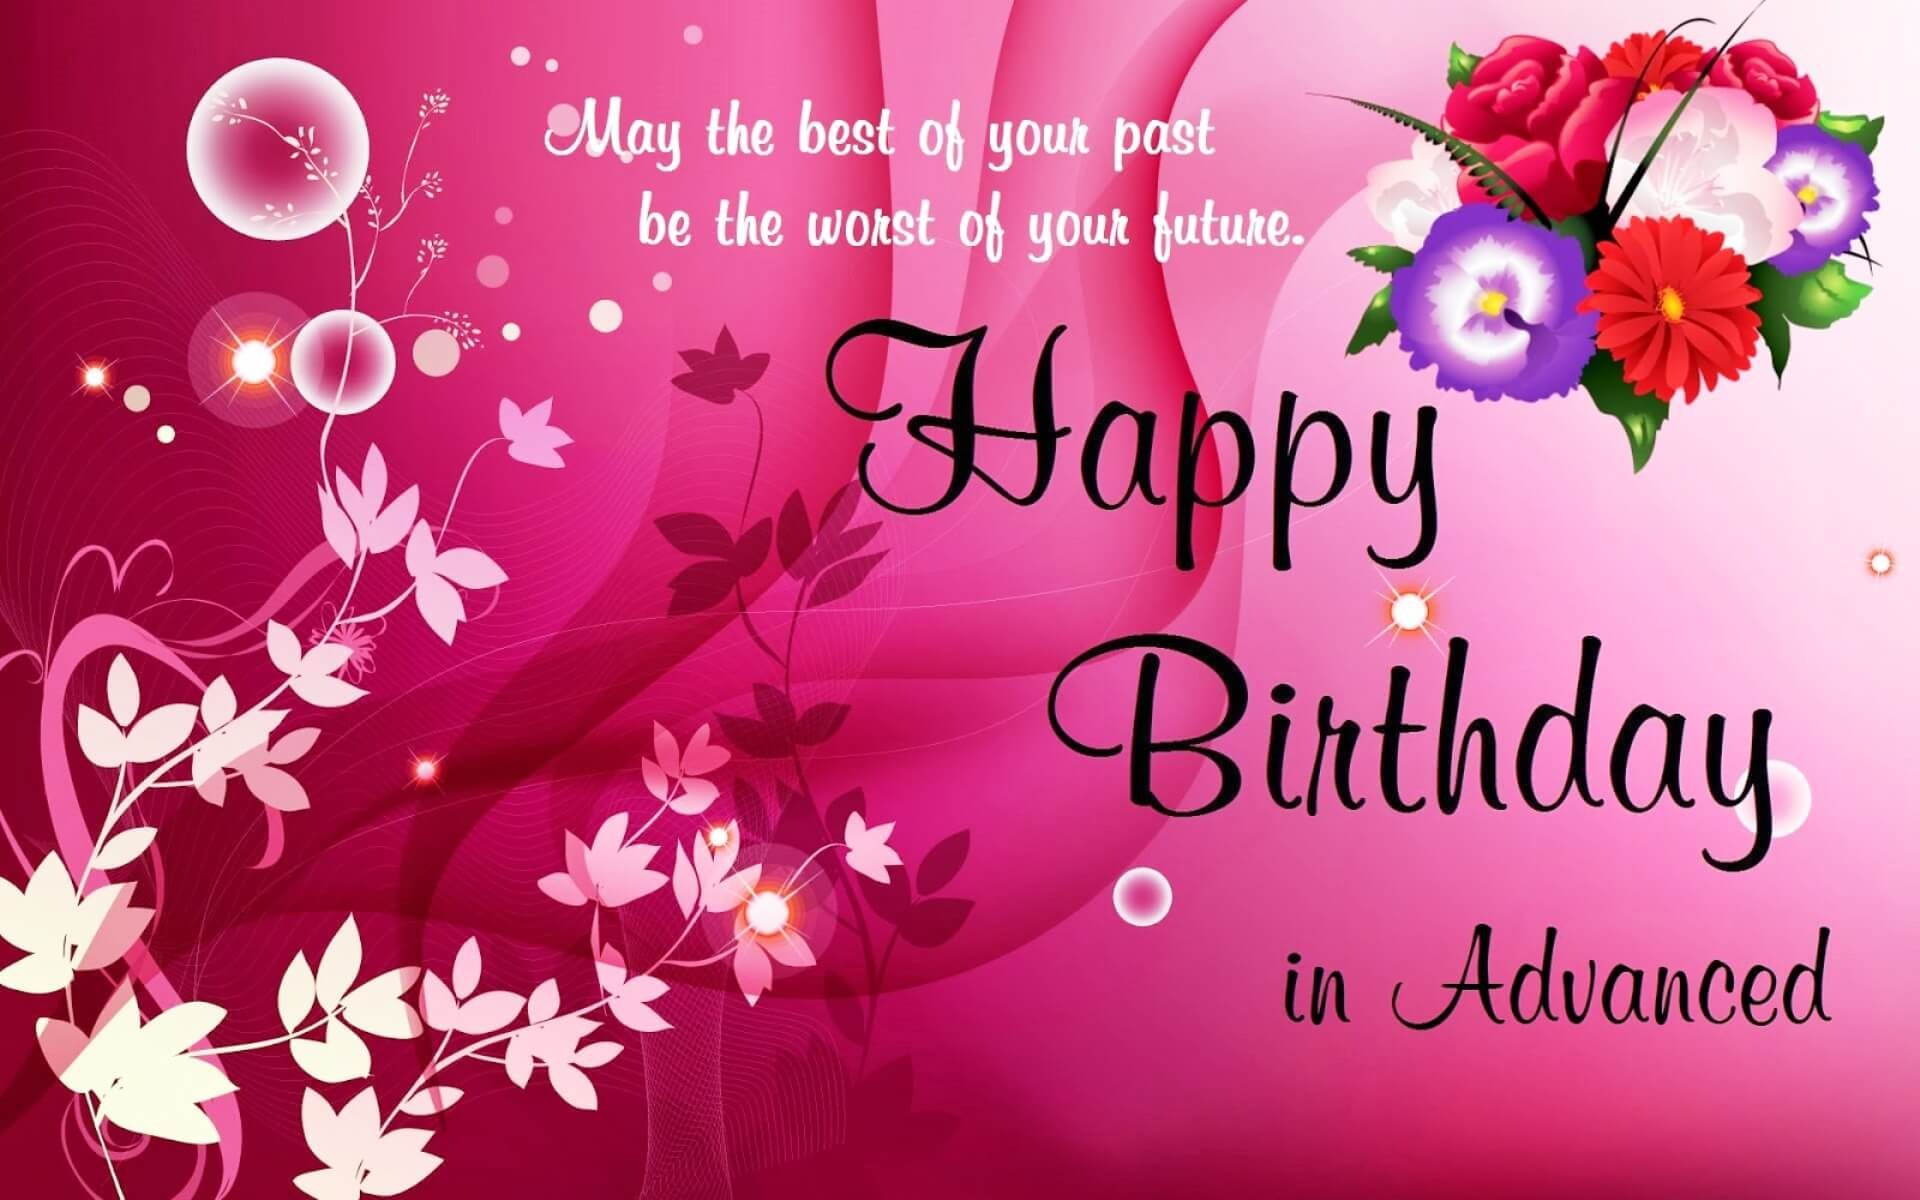 500 Happy Birthday Images Wallpapers Download Happy Birthday Wishes Quotes Images Happy Birthday Wishes Cards Advance Happy Birthday Wishes Birthday Wishes And Images